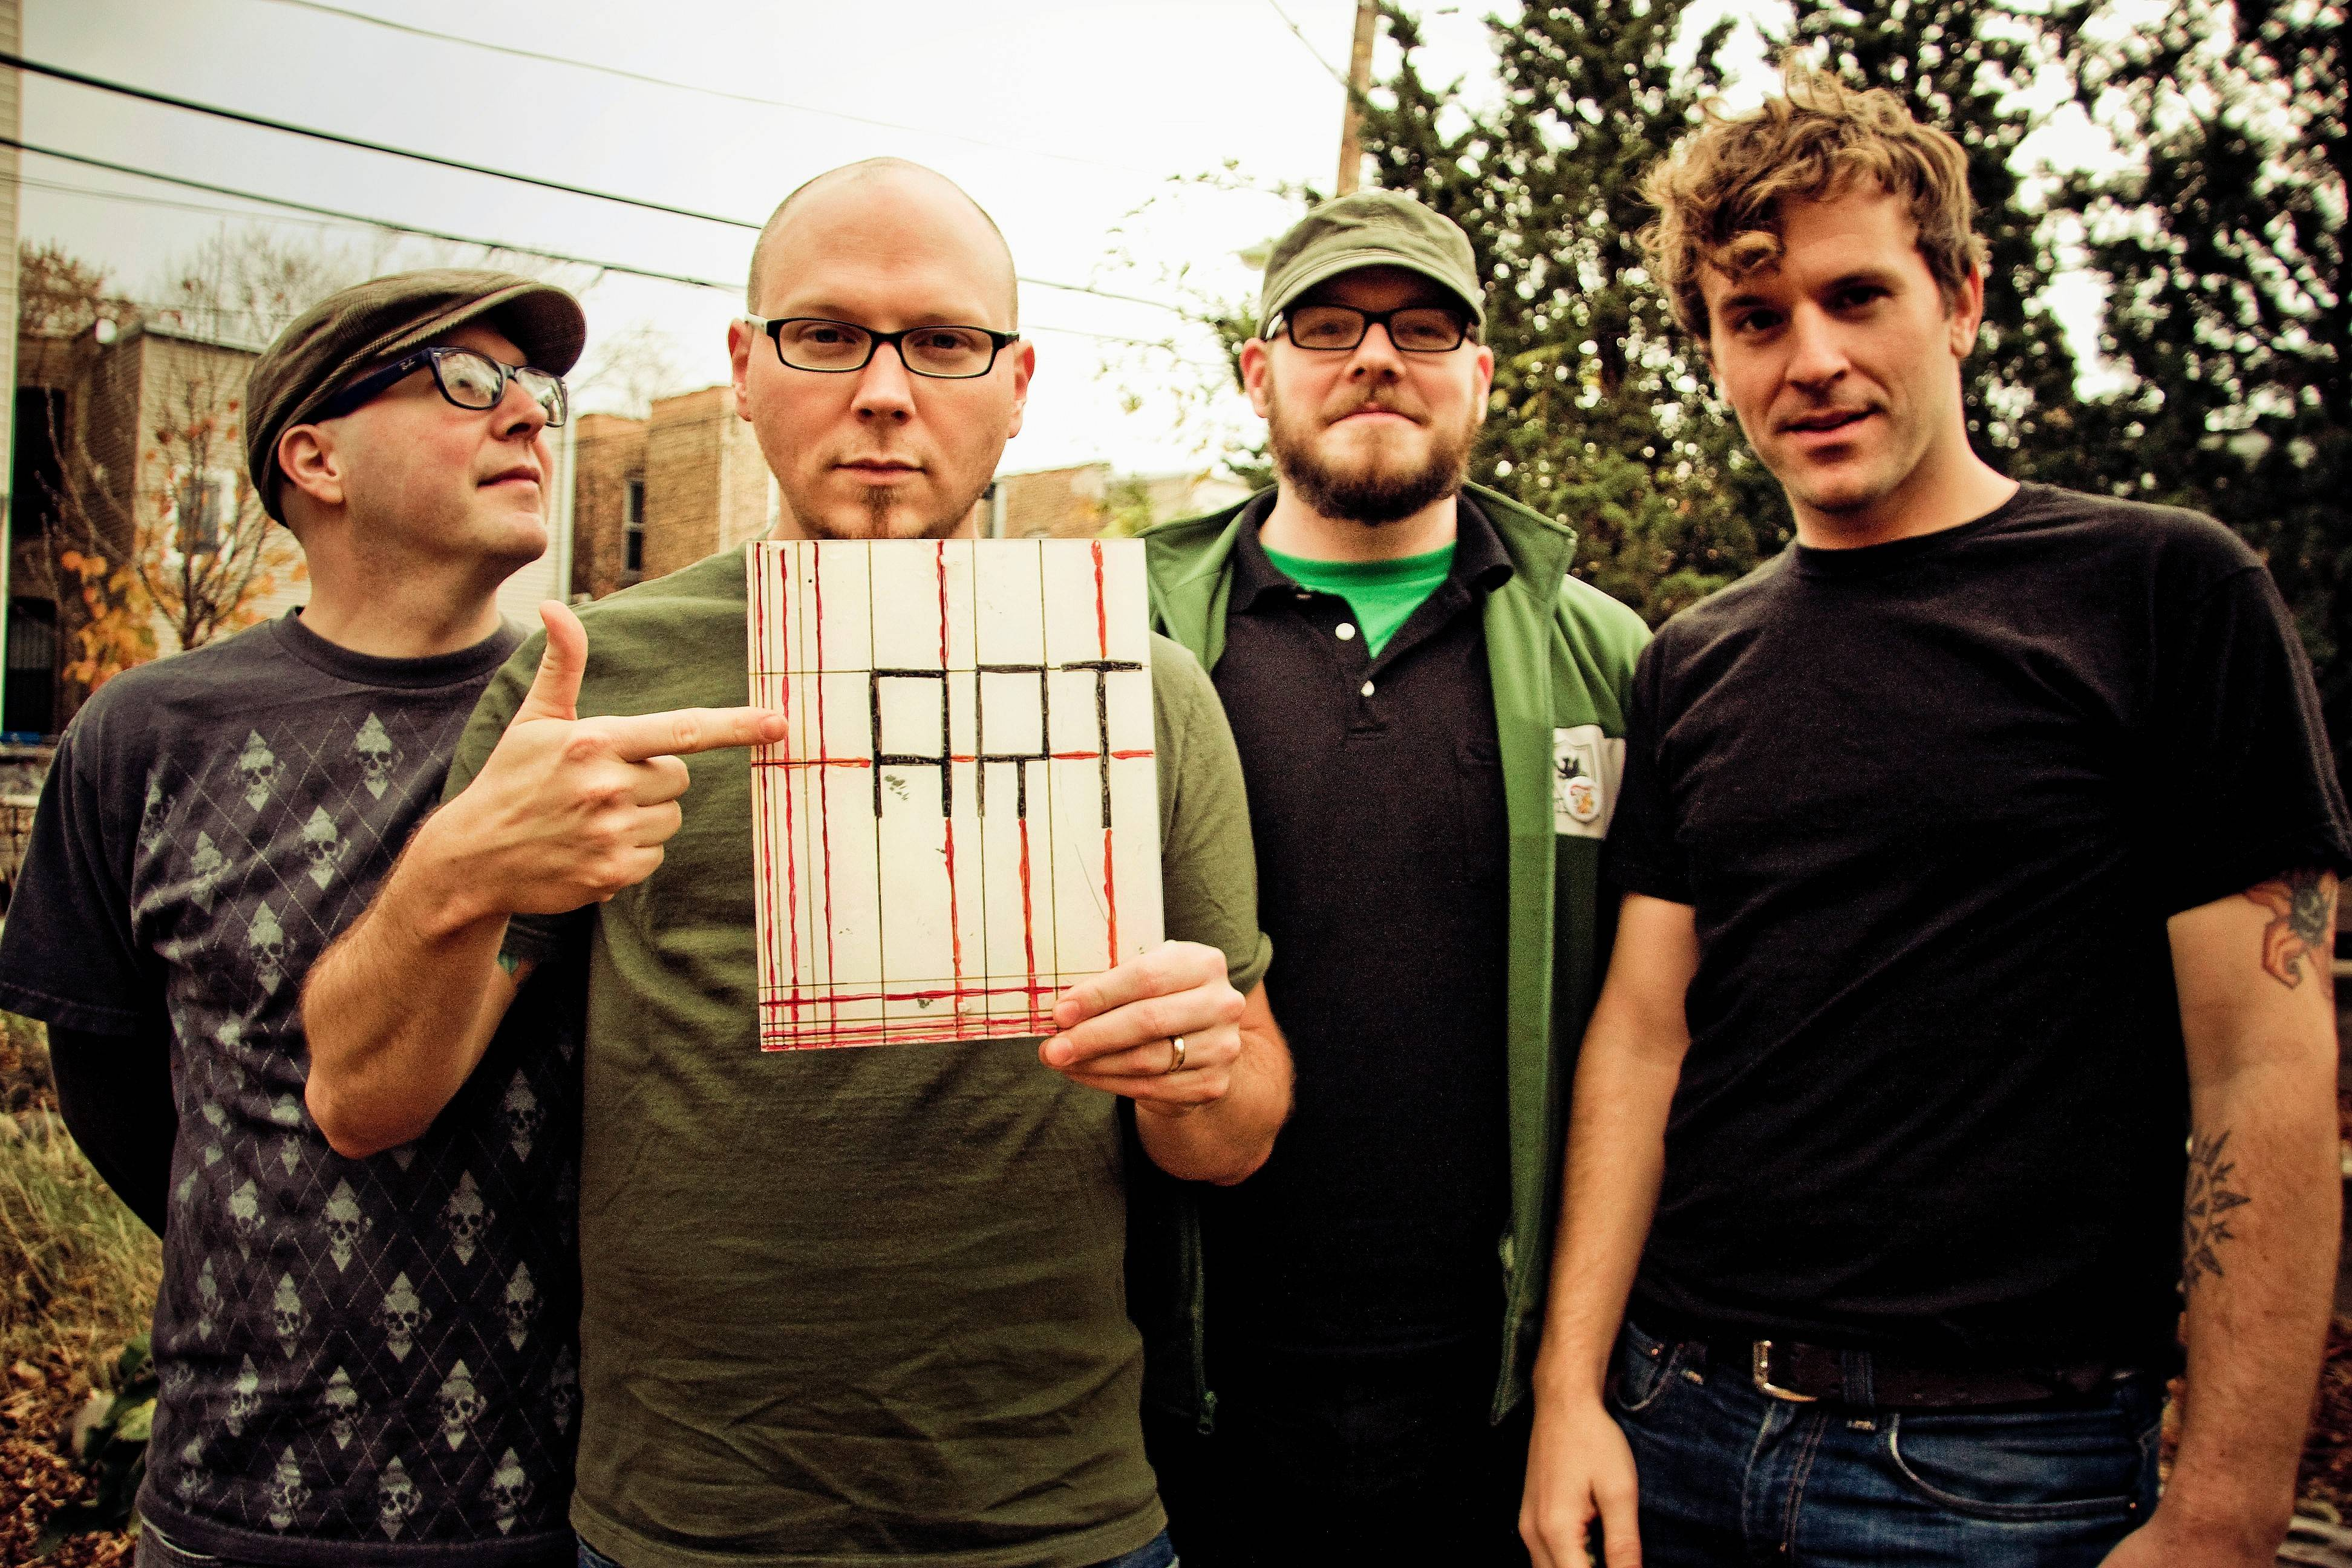 The Smoking Popes are scheduled to perform in Elgin later this month